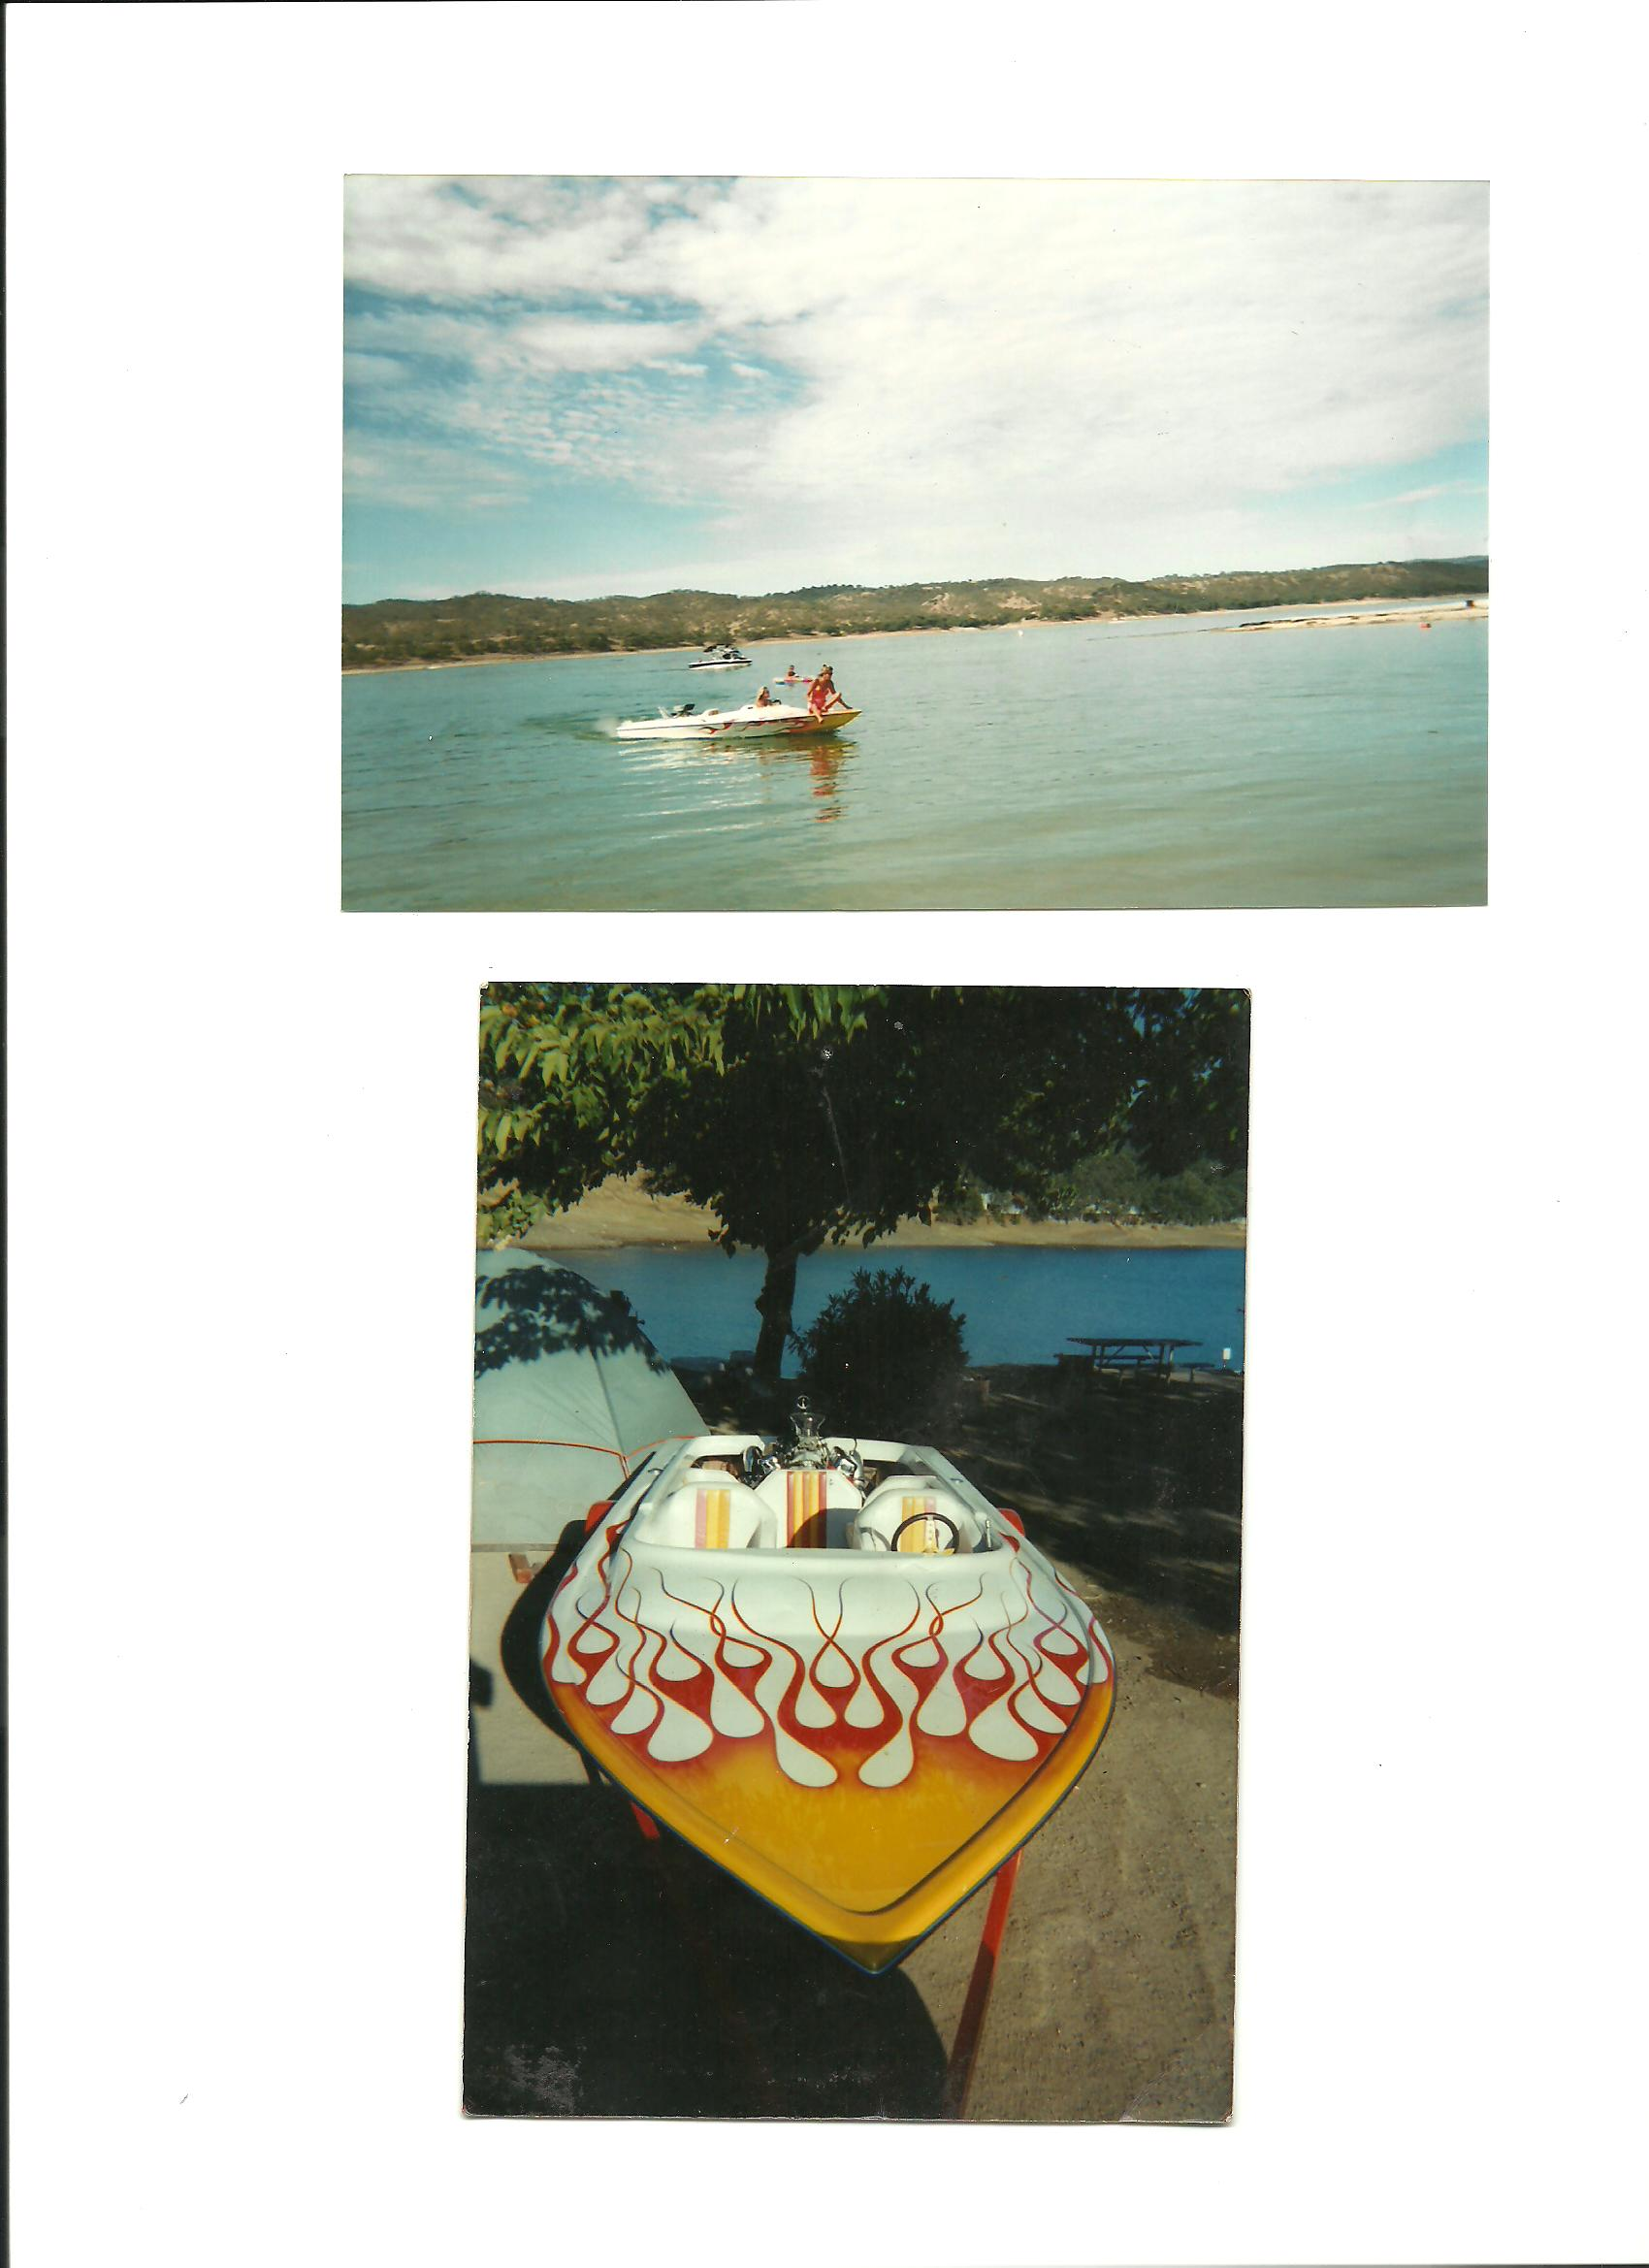 Click image for larger version.  Name:boat picts 2 001.jpg Views:80 Size:239.7 KB ID:173324